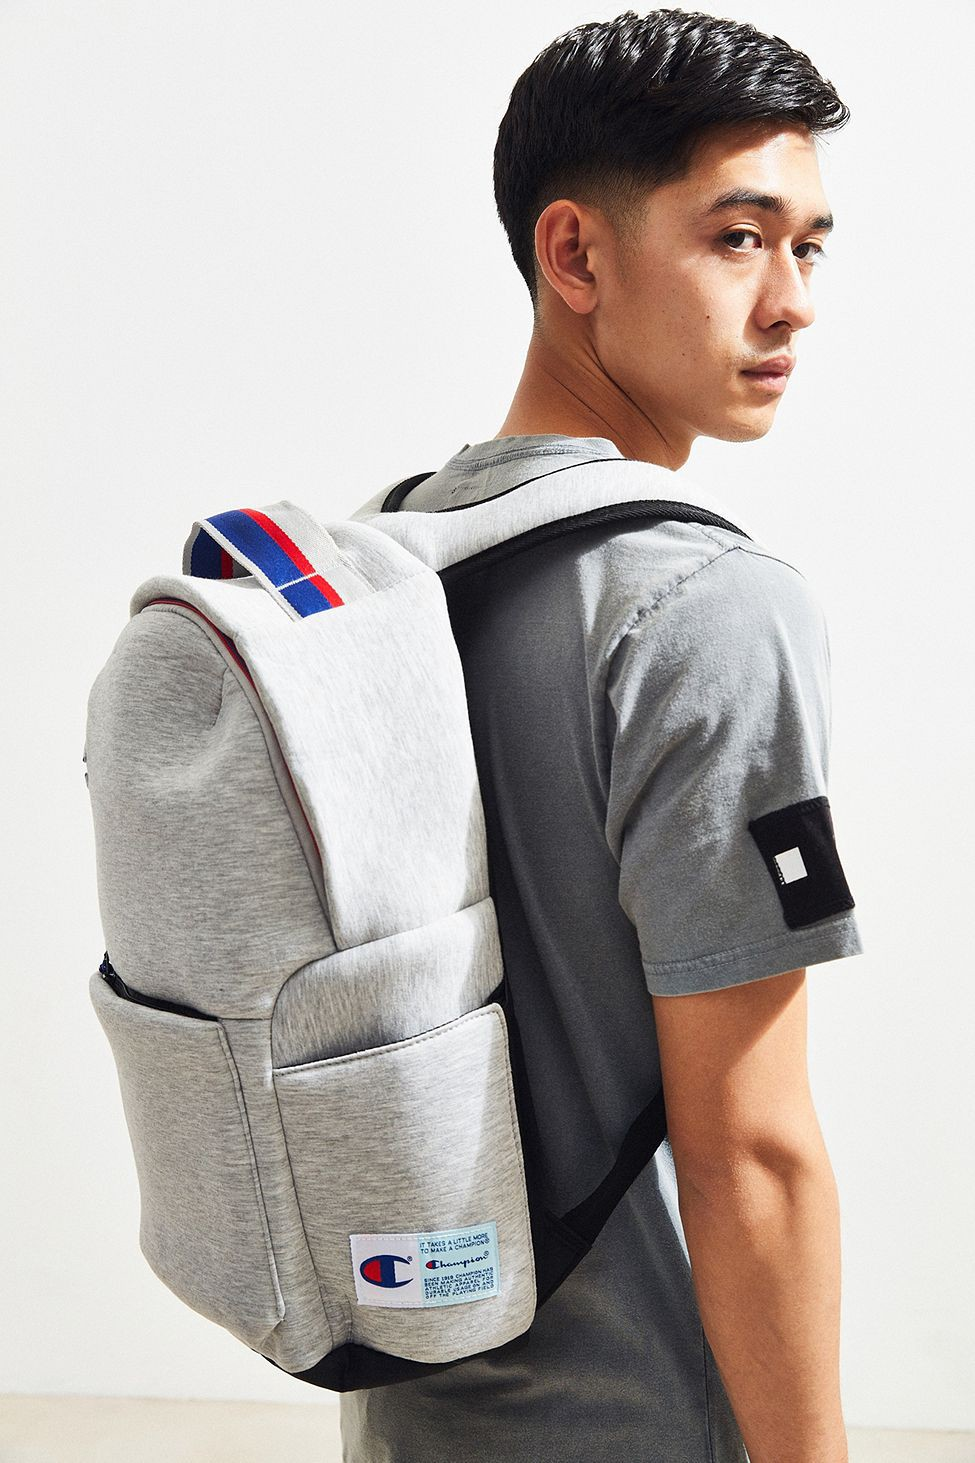 2555e4e8e11e Urban Outfitters Champion Attribute Backpack - Light Grey One Size ...